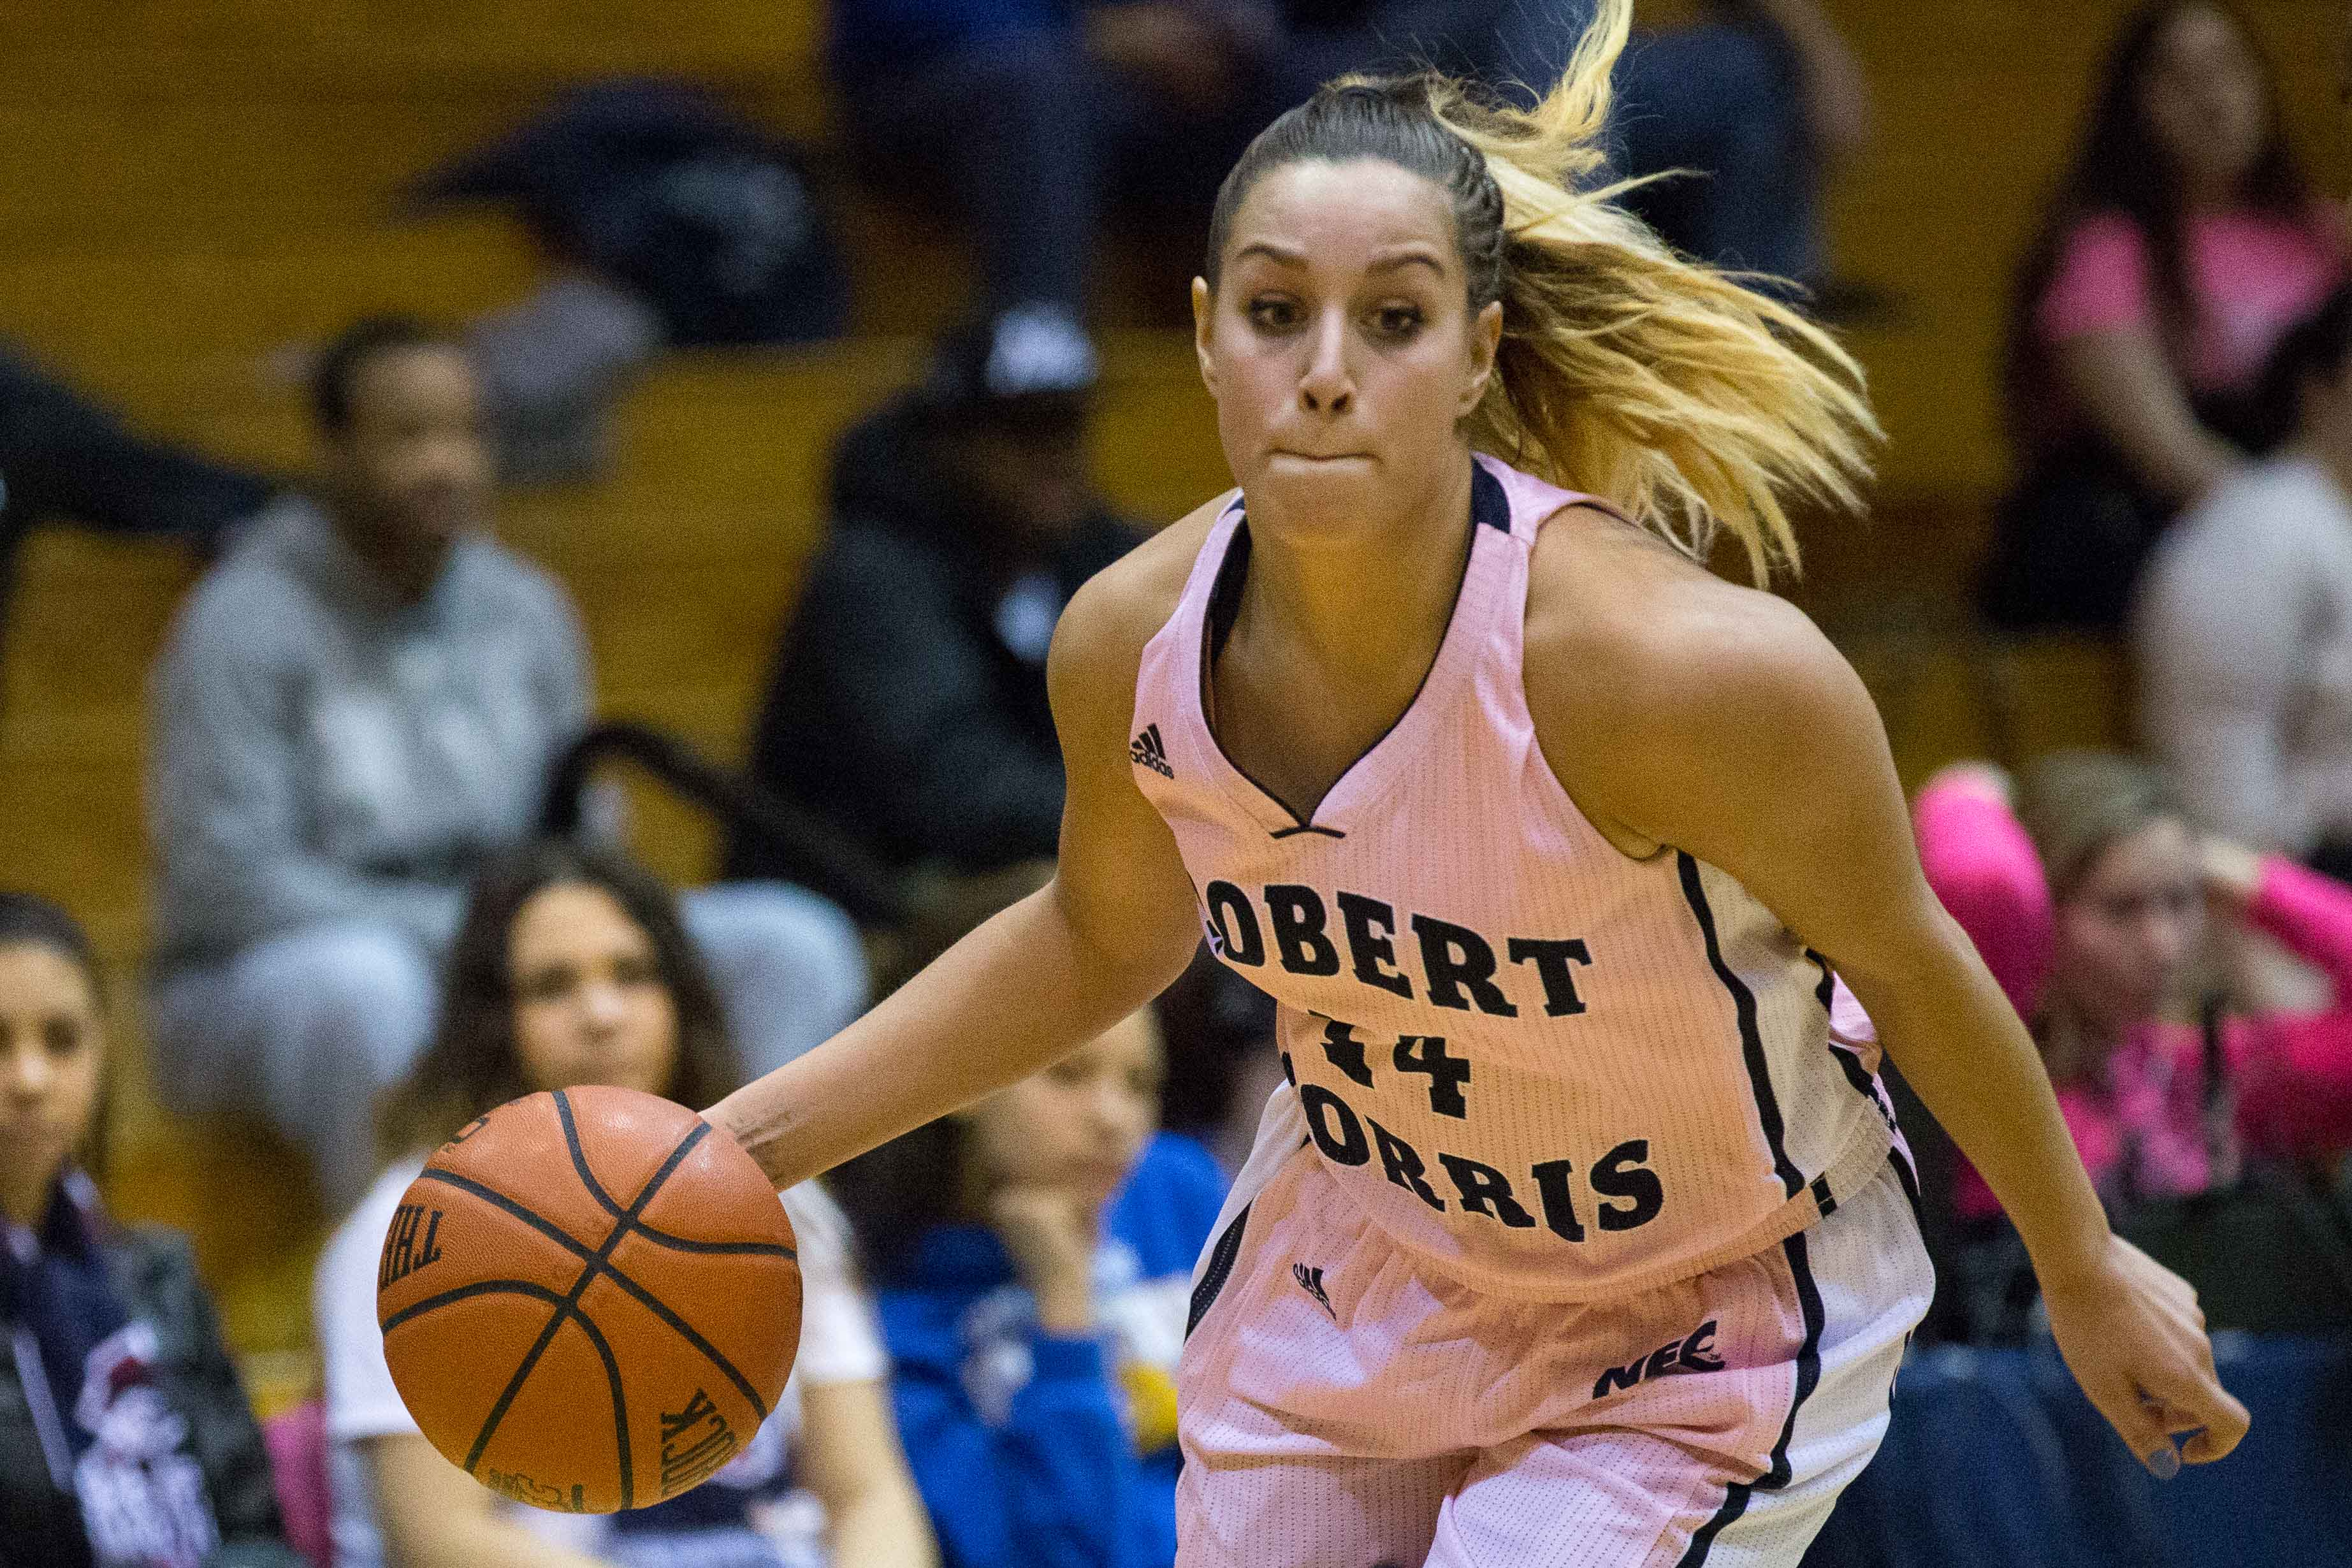 Ashley Ravelli recorded 18 points in Monday night's game against Sacred Heart on the road but the Colonials fell short 62-52